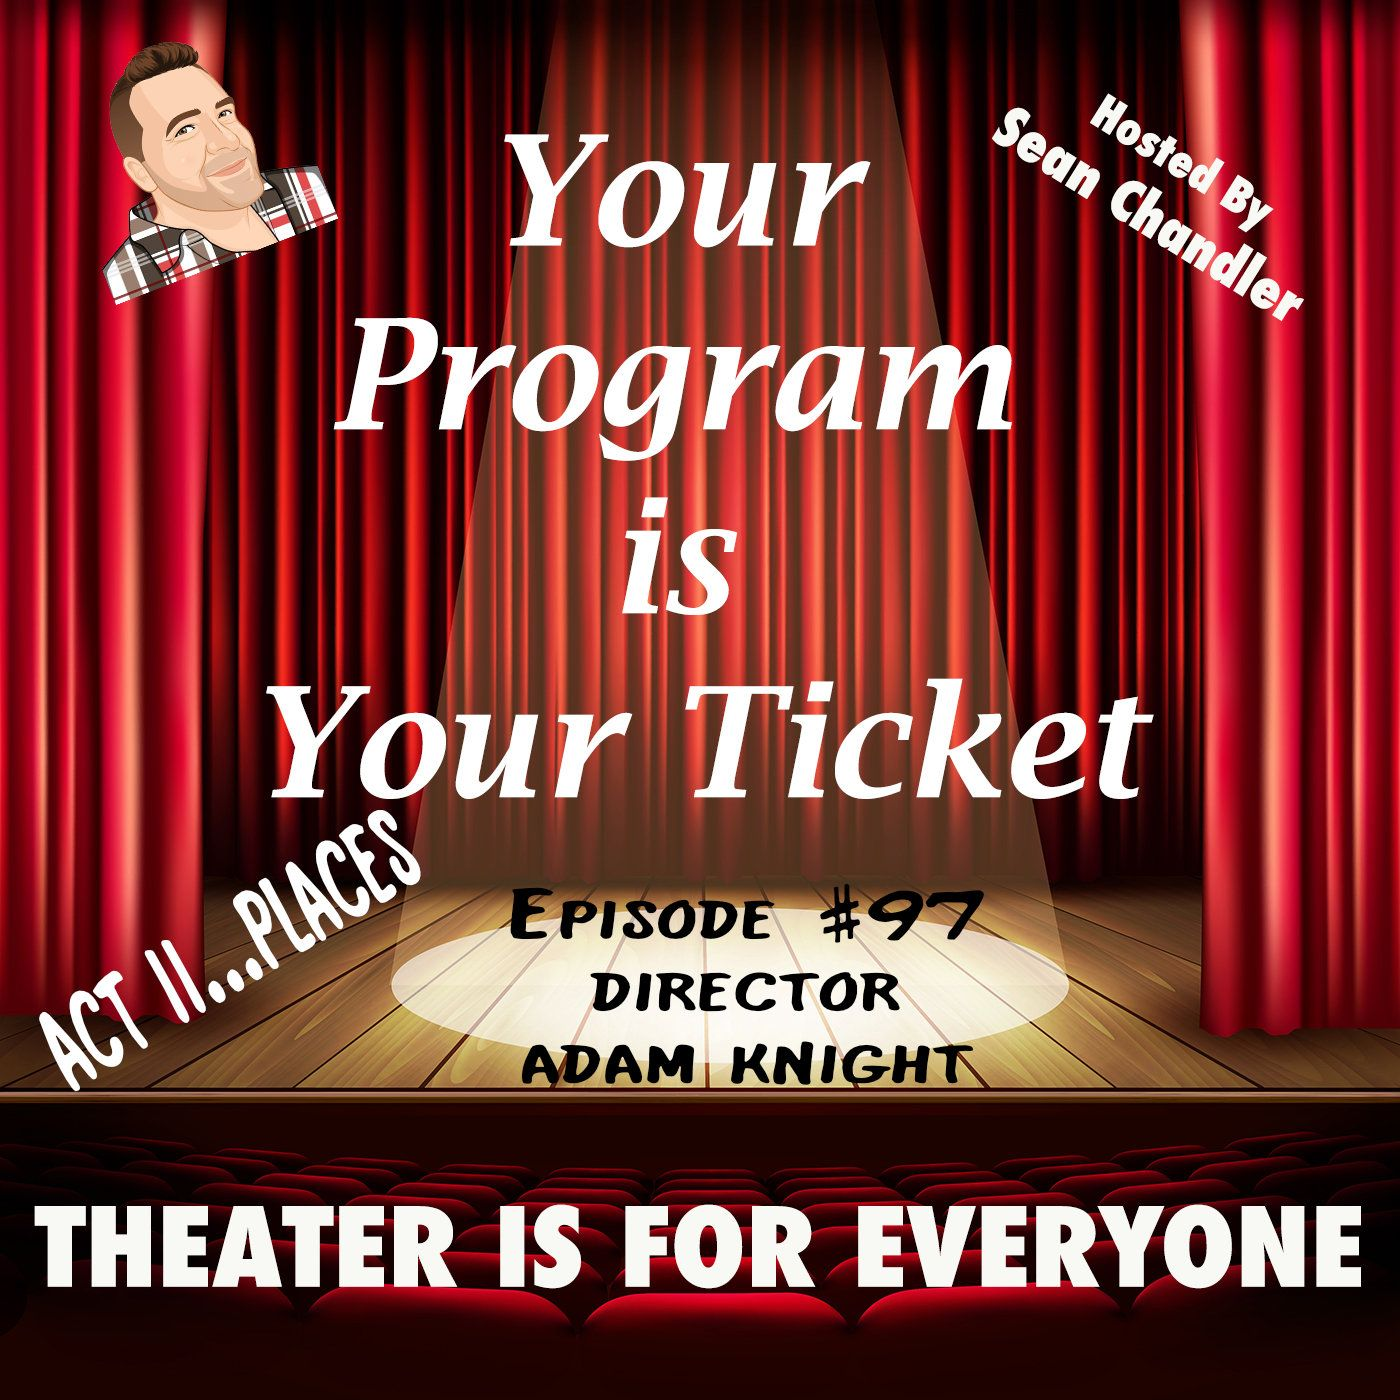 Ep097-Act II Places-Director Adam Knight